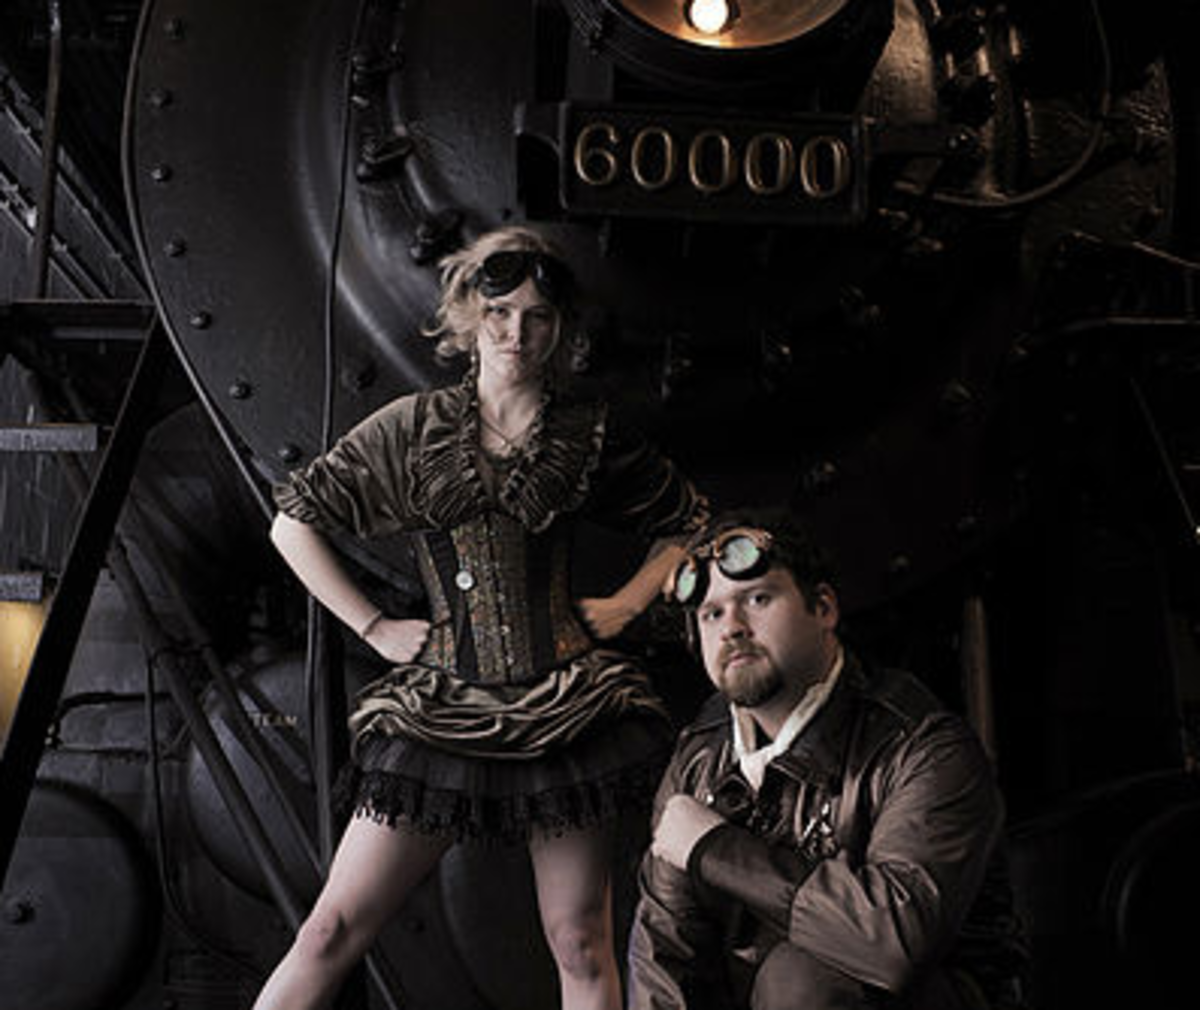 Goggles are one great accessory for your homemade steampunk costume.